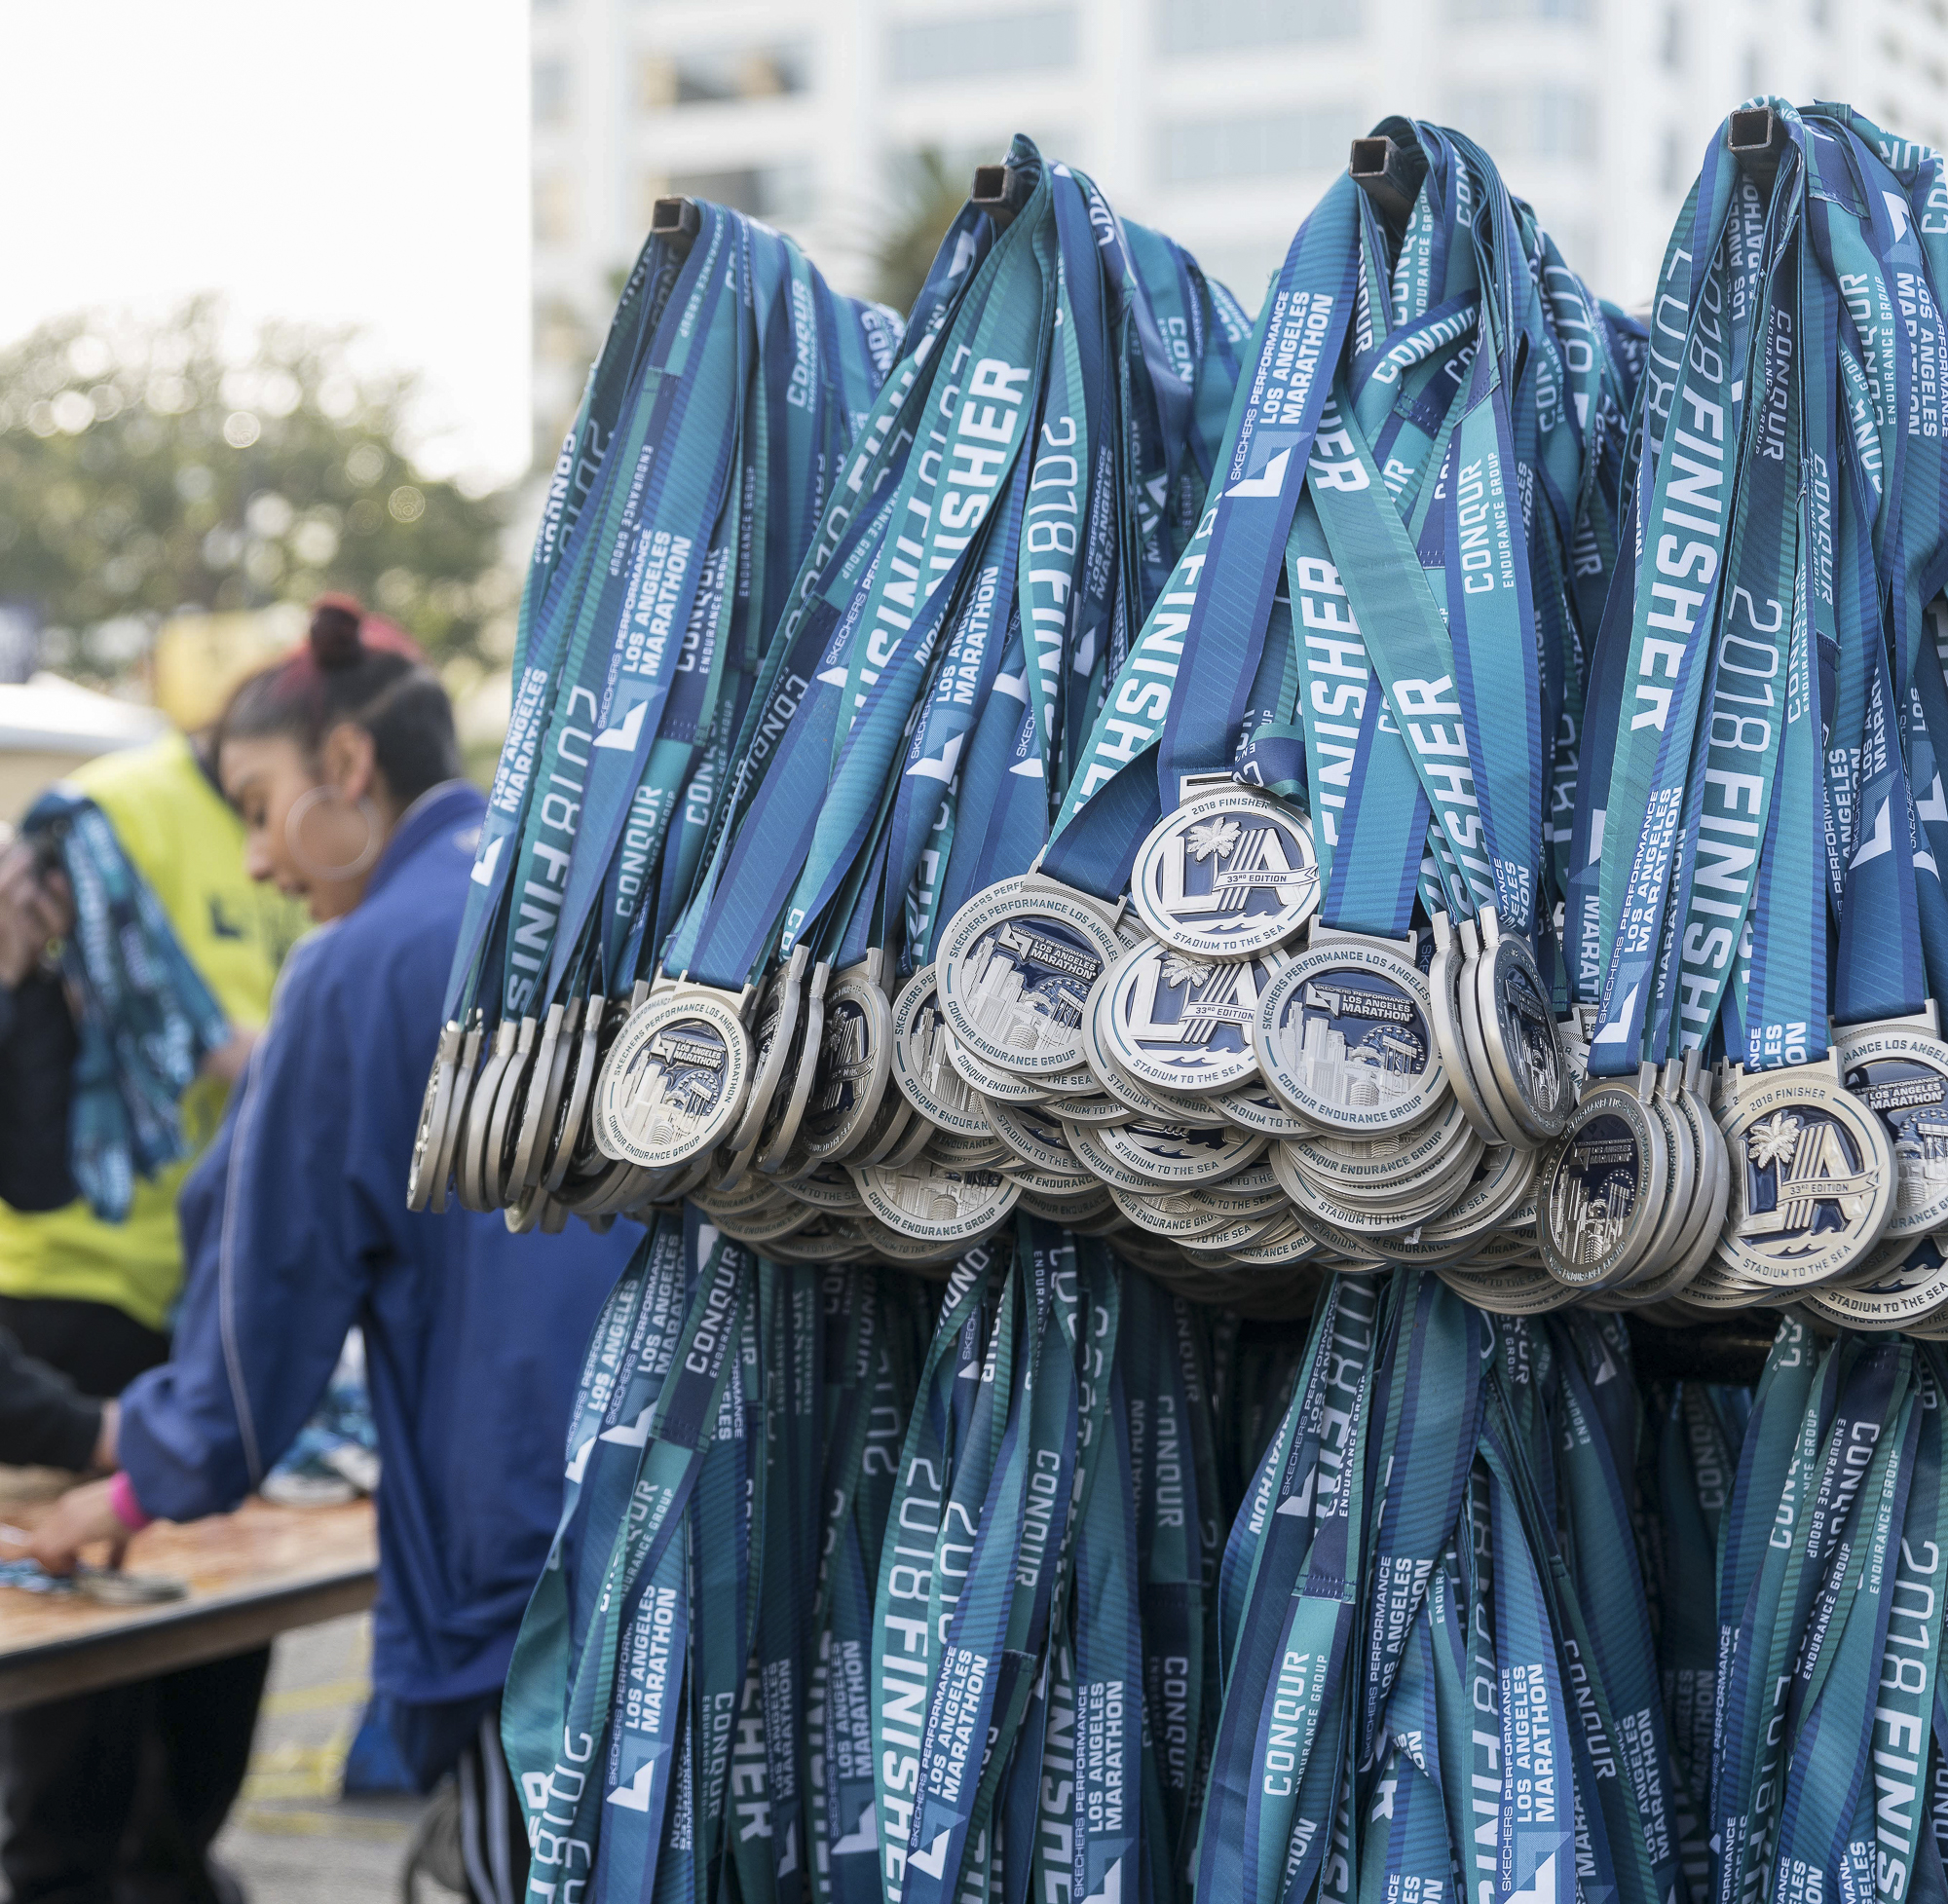 Los Angeles Marathon volunteer, Karen Arriola, unboxes and hangs medals in Santa Monica, California on Sunday, March 18, 2018. It is estimated that 24,000 people participated in the marathon this year. (Photo by: Helena Sung).